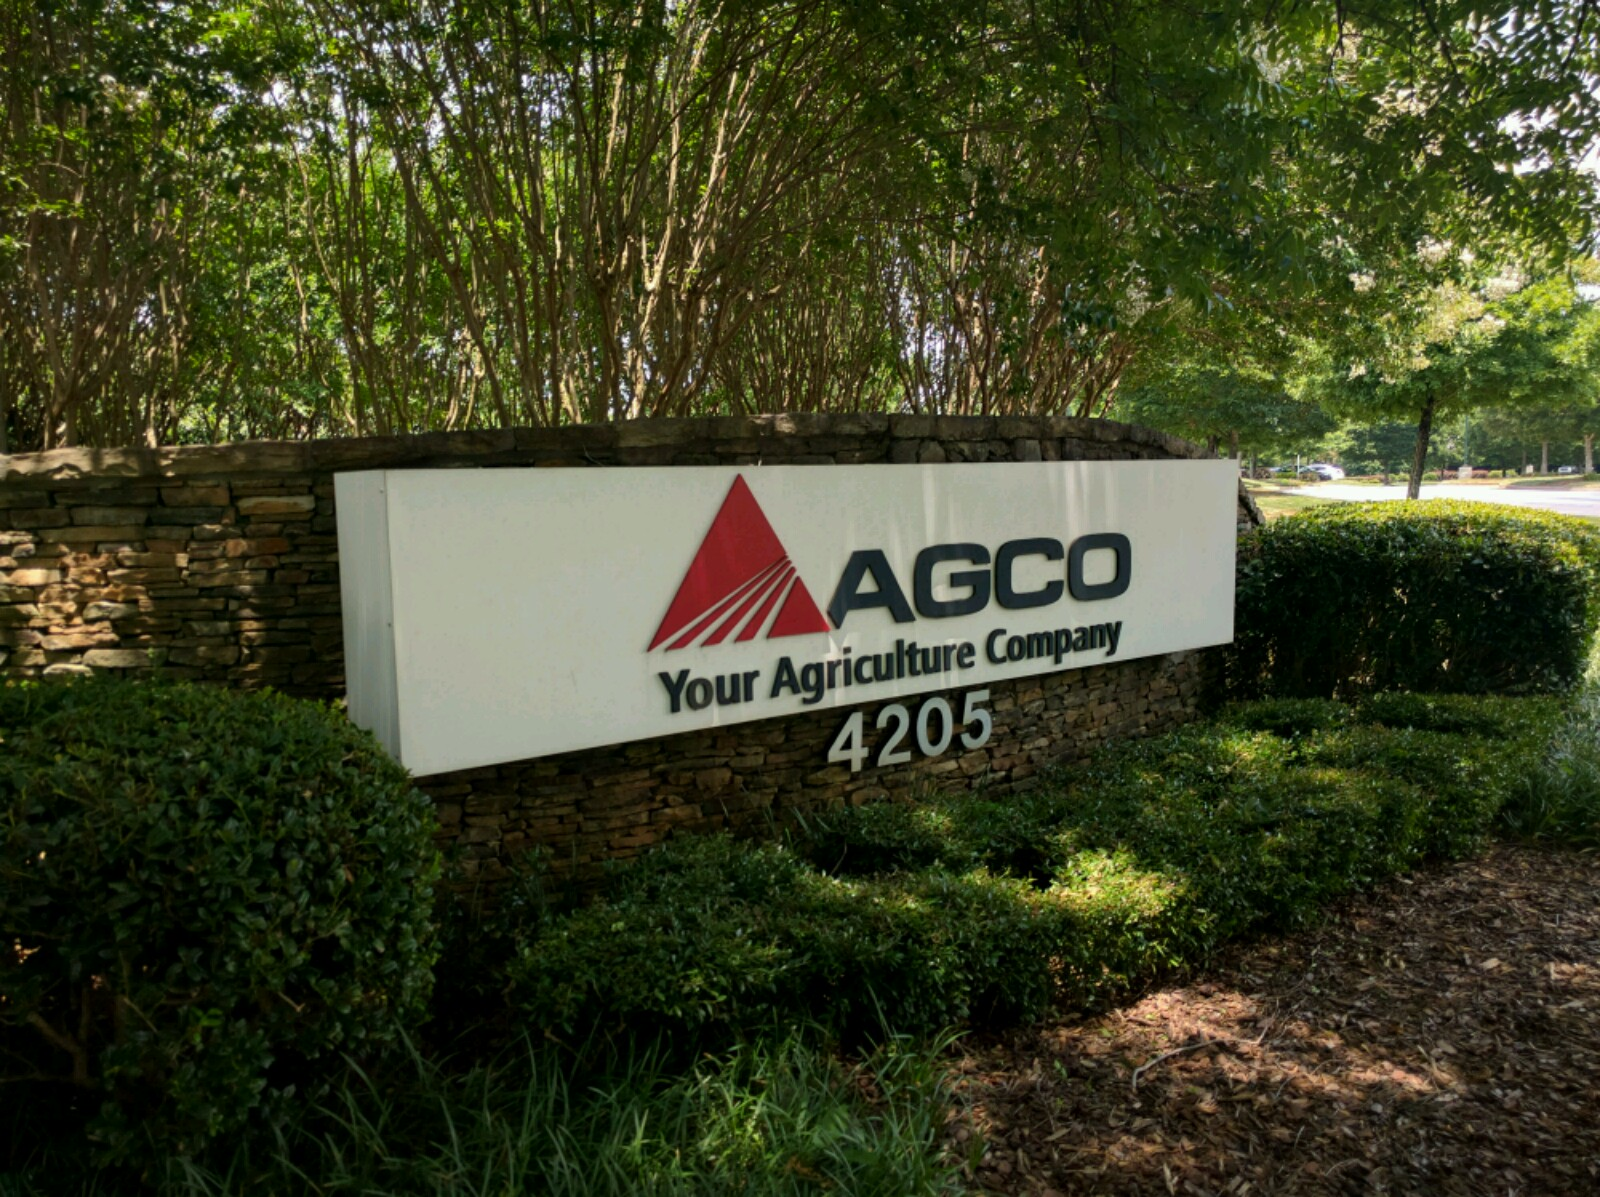 Entrance to AGCO's corporate headquarters in Duluth, Georgia.